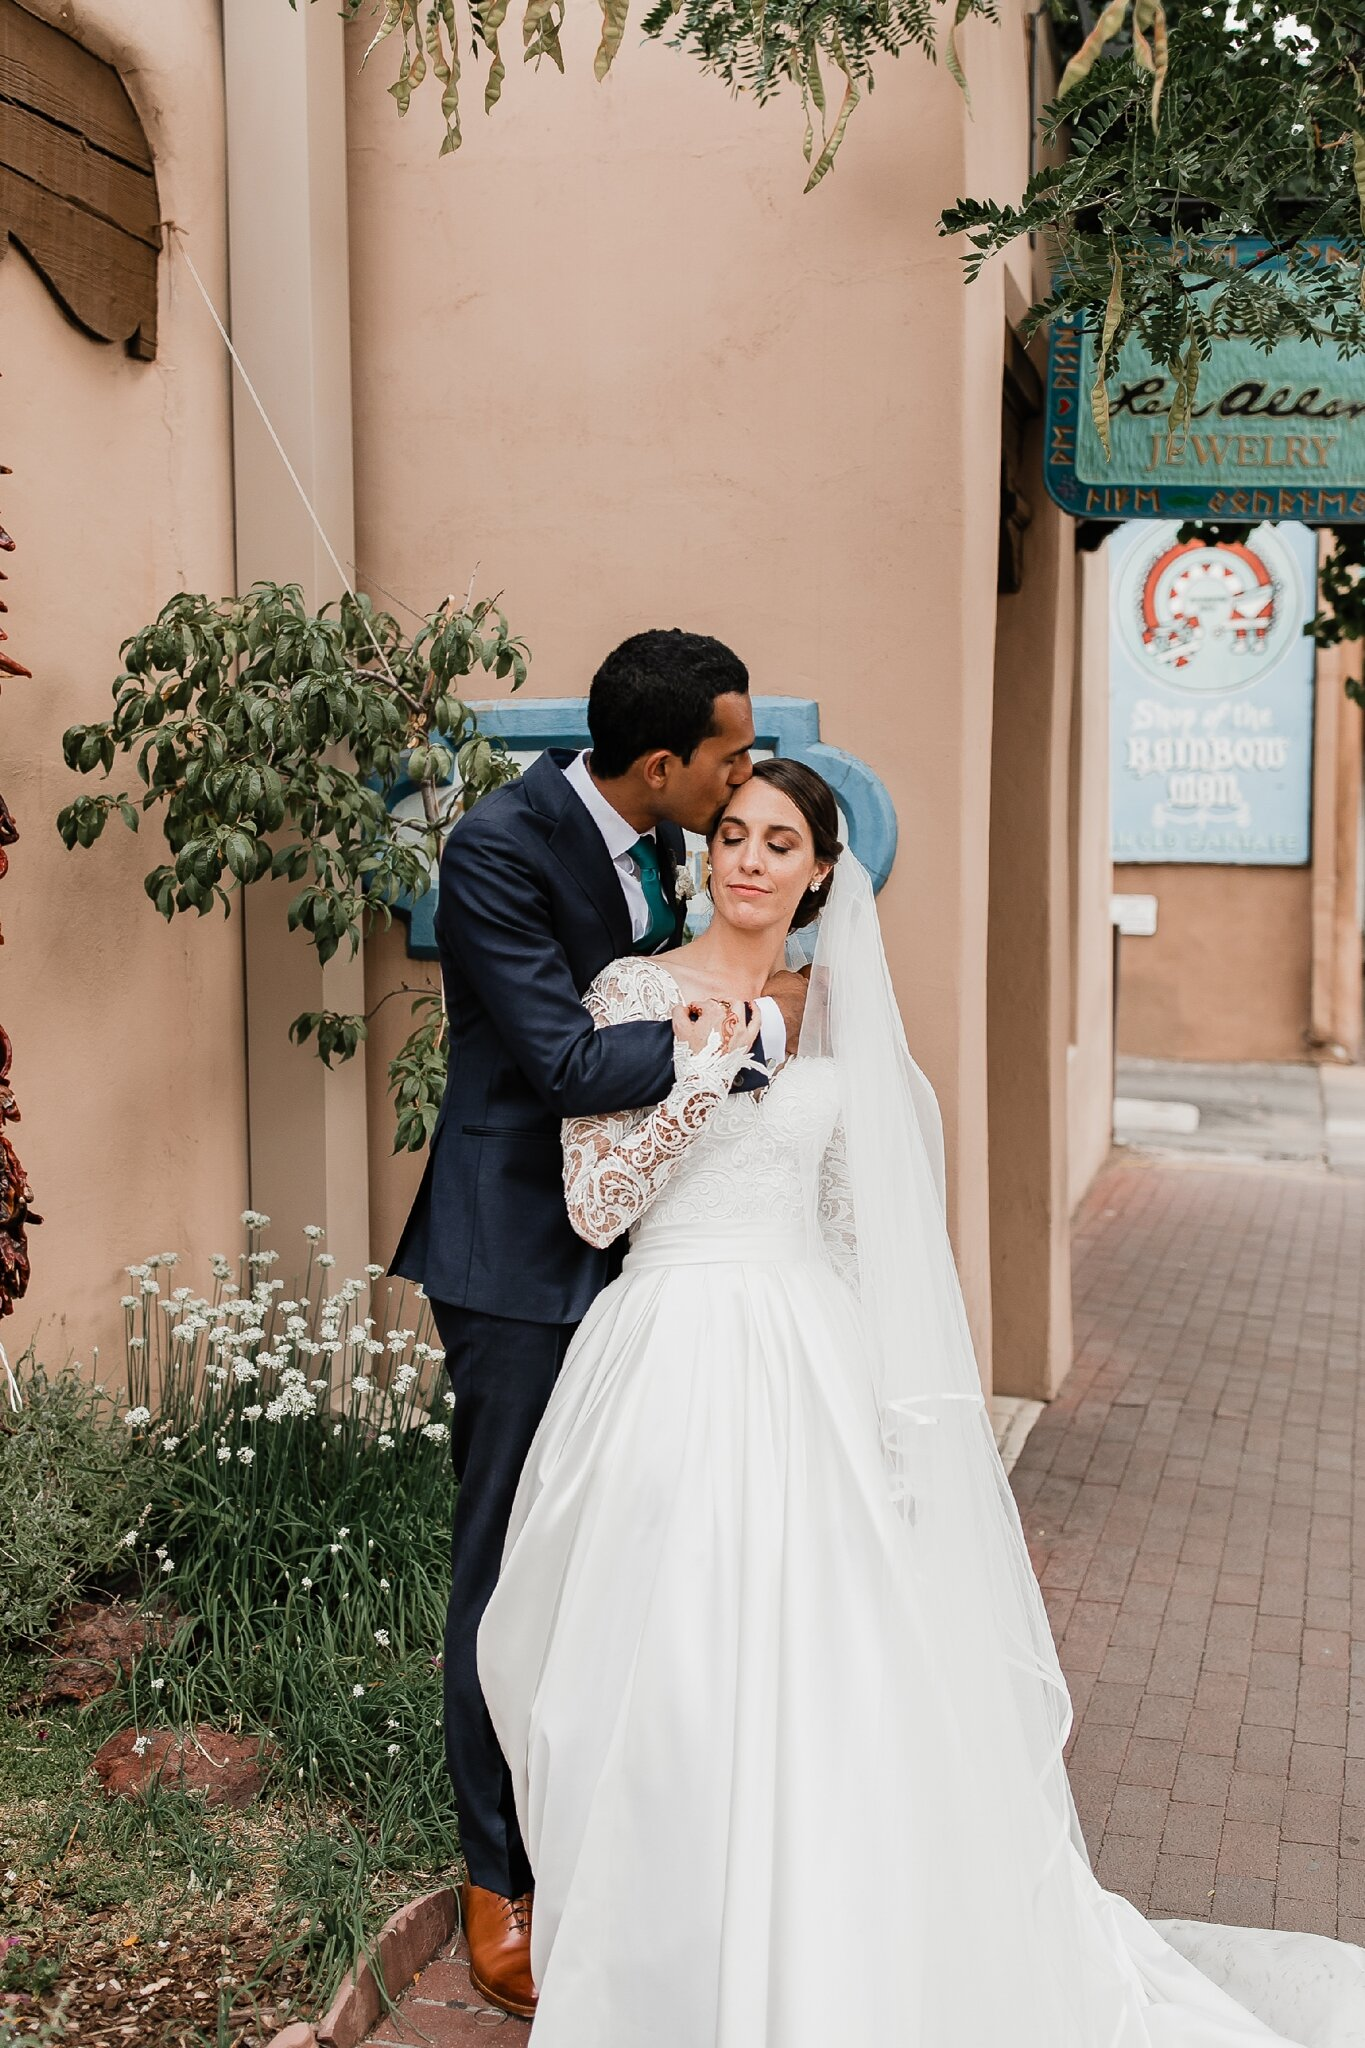 Alicia+lucia+photography+-+albuquerque+wedding+photographer+-+santa+fe+wedding+photography+-+new+mexico+wedding+photographer+-+new+mexico+wedding+-+hindu+wedding+-+catholic+wedding+-+multicultural+wedding+-+santa+fe+wedding_0083.jpg